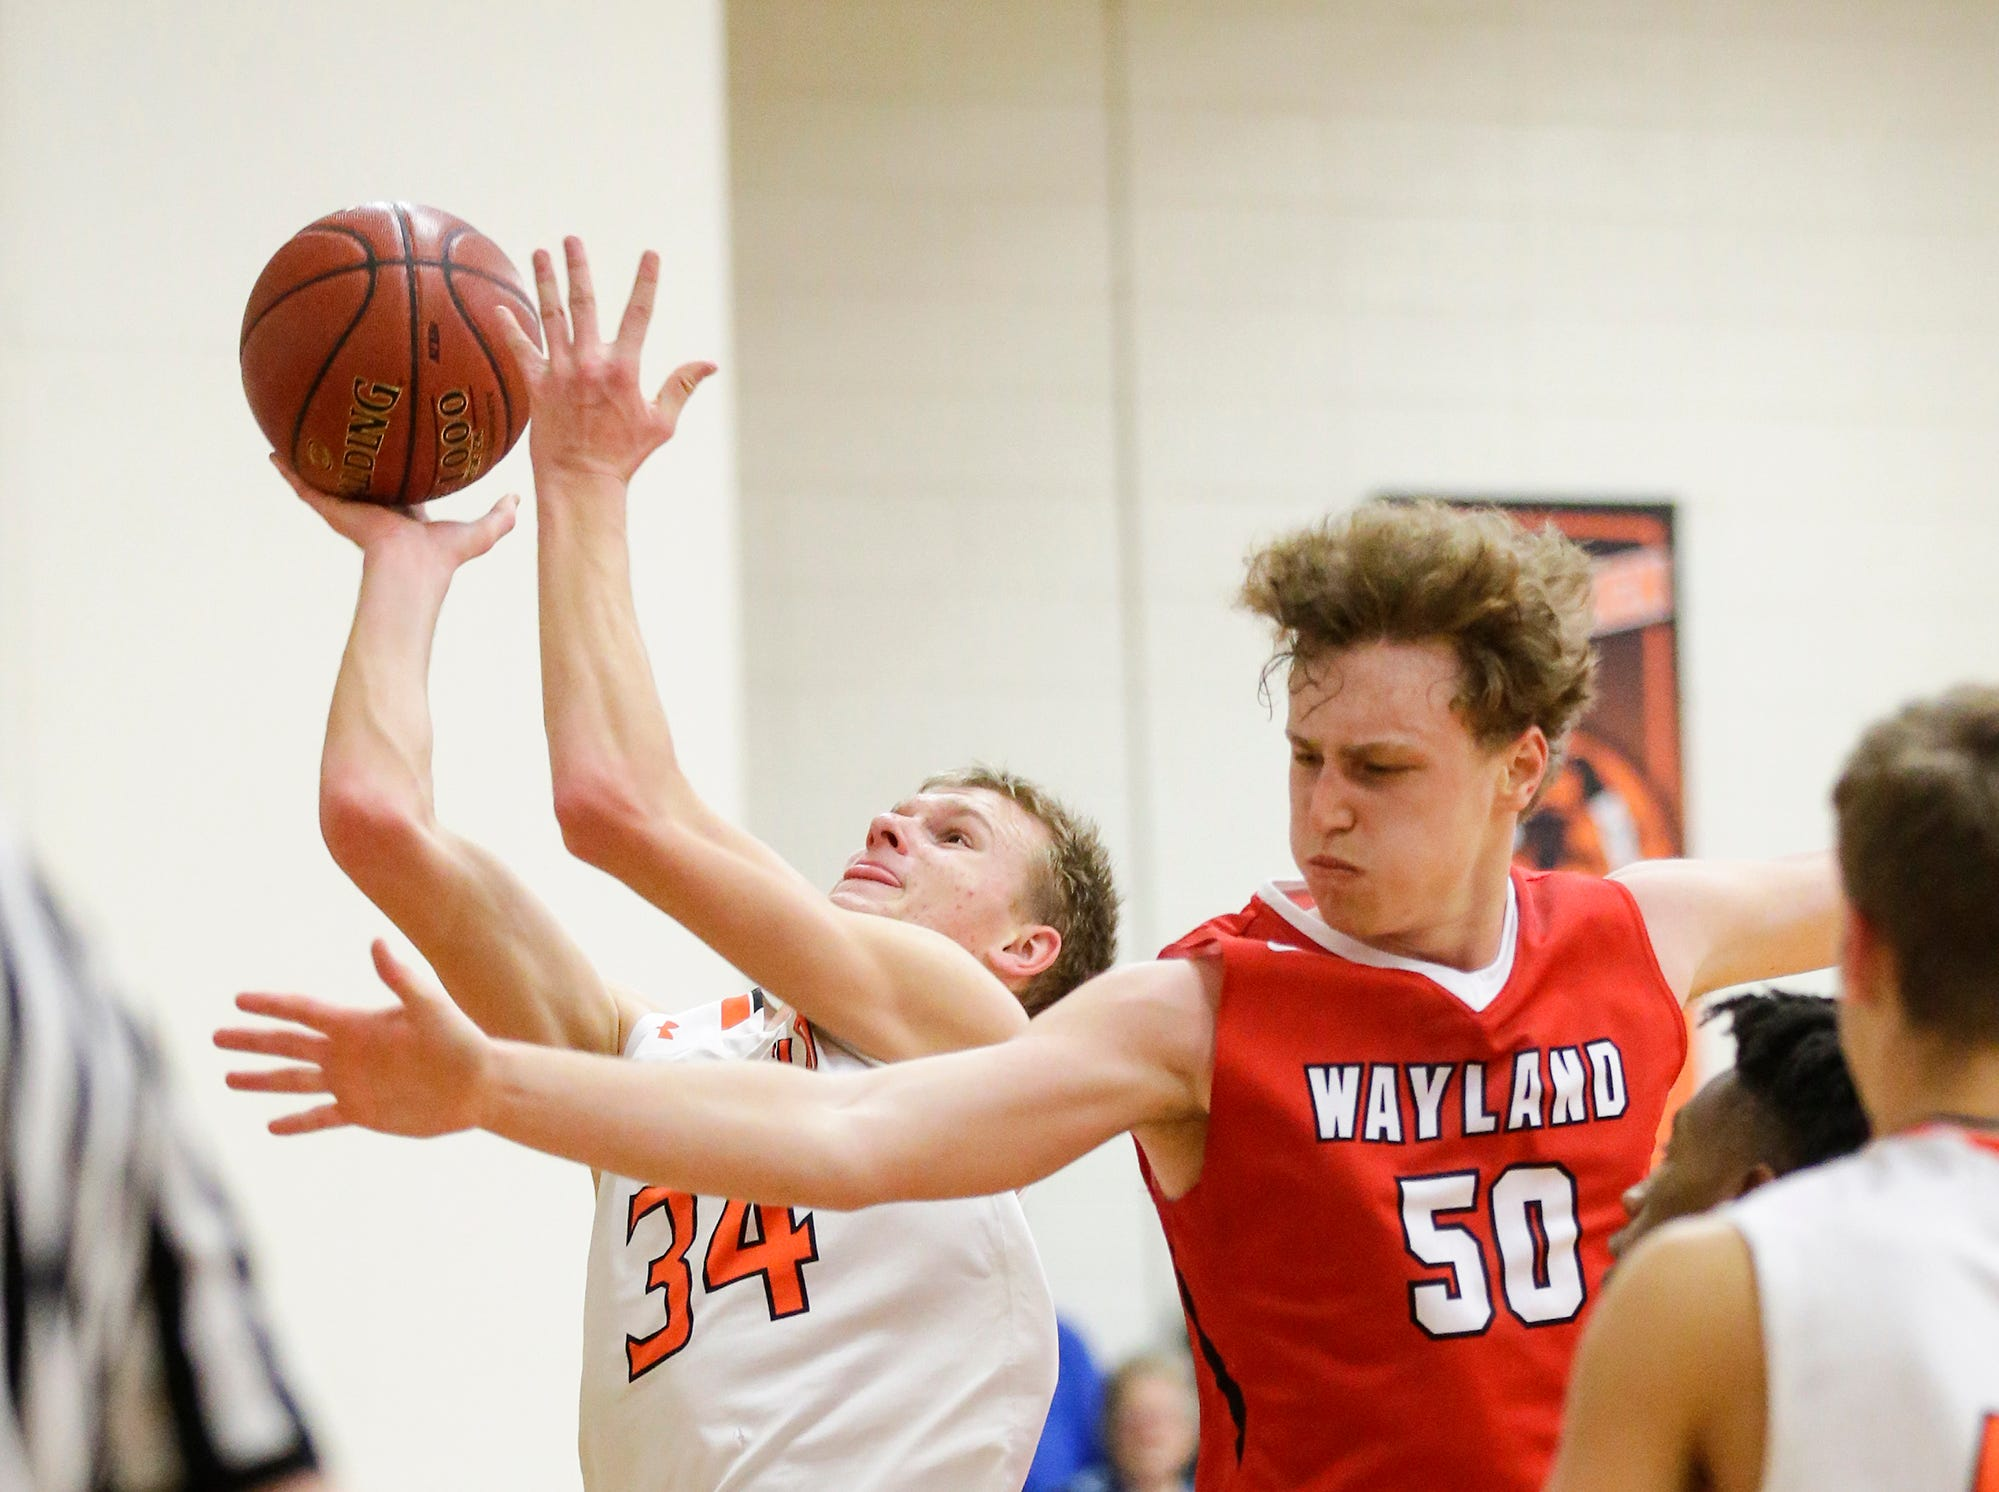 Oakfield High School boys basketball's Jaxson Hofman gets fouled by Wayland Academy's Adam Rubinchik January 11, 2019 during their game in Oakfield. Oakfield won the game 56-48. Doug Raflik/USA TODAY NETWORK-Wisconsin